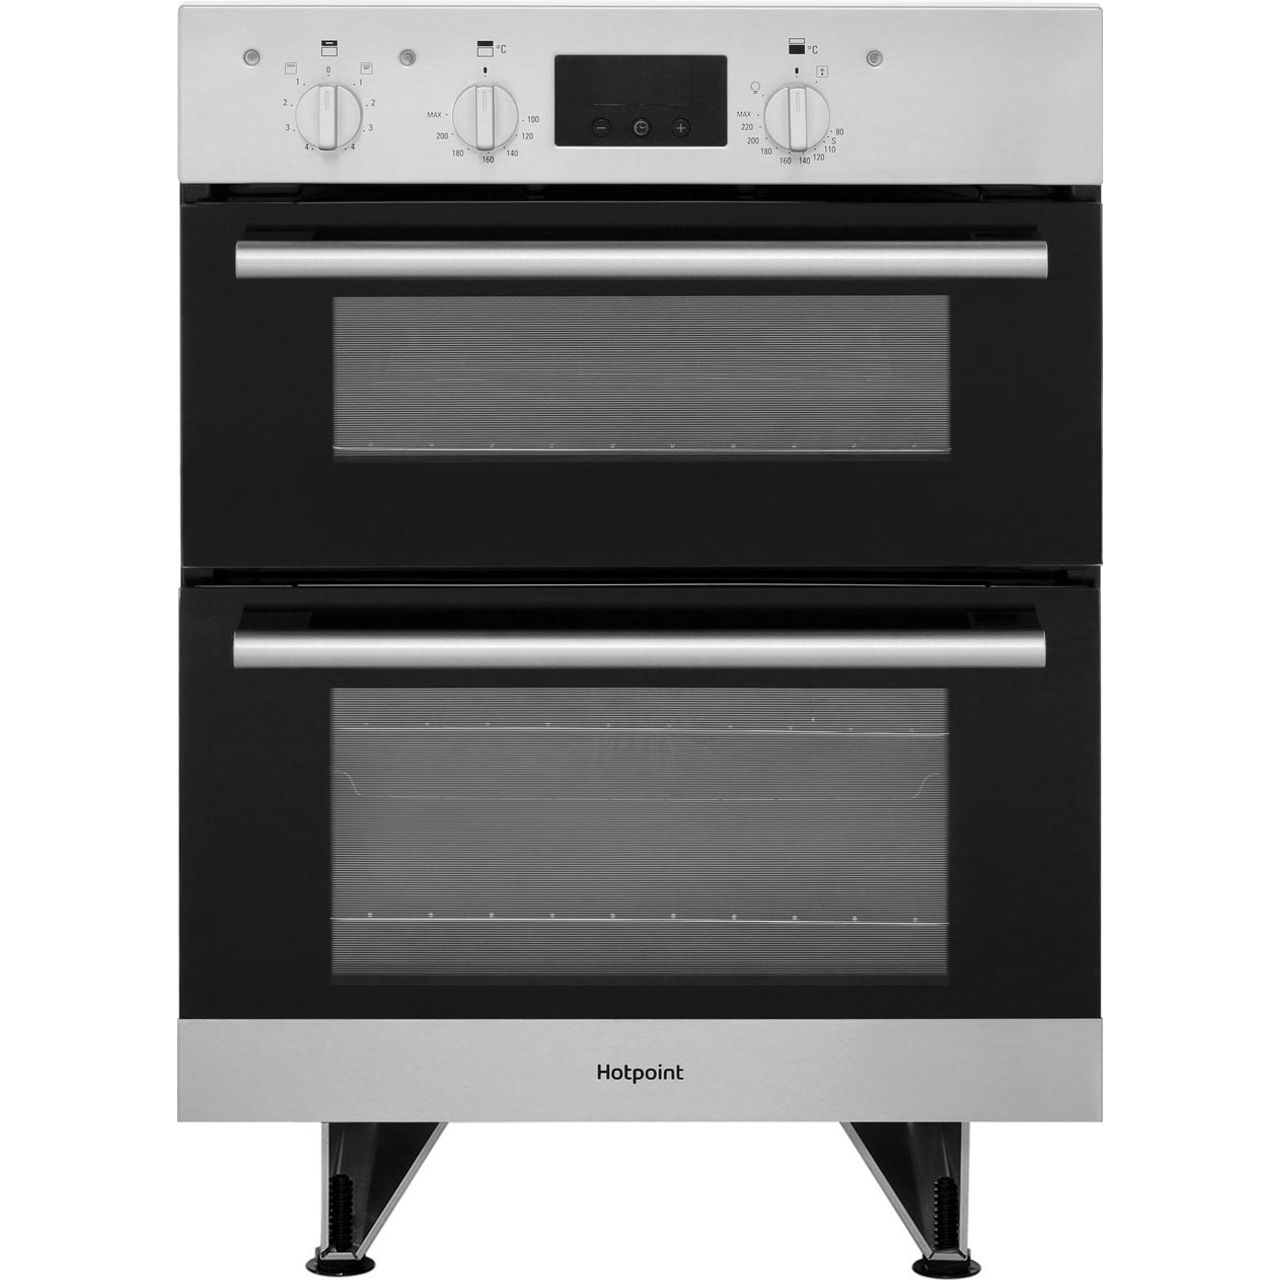 Hotpoint Class 2 DU2540IX Built Under Double Oven in Stainless Steel